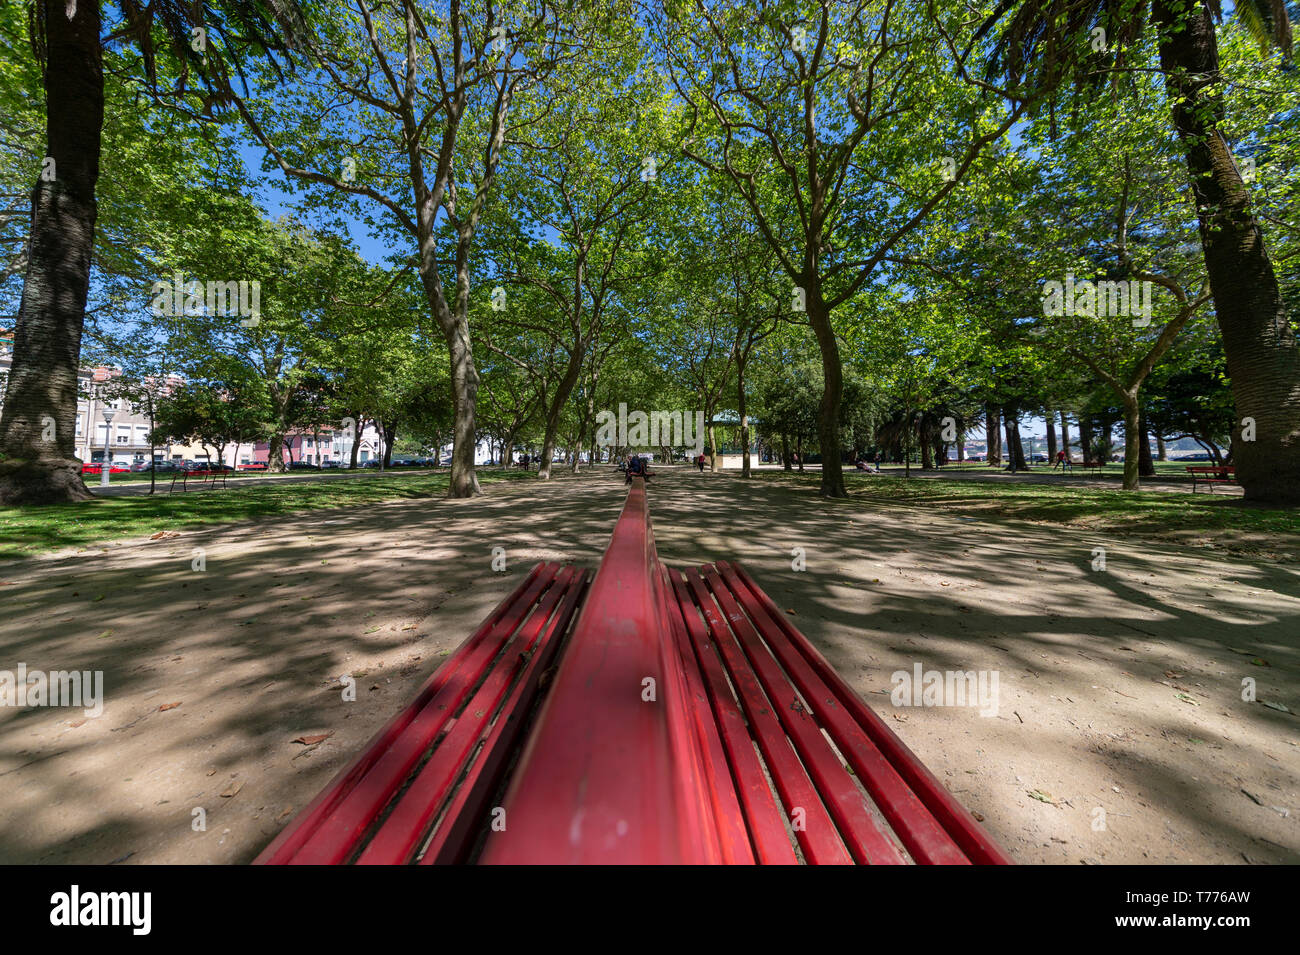 Jardim do Passeio Alegre, in the Foz district of Porto on the coast, with red park bench and dappled sunlight. - Stock Image